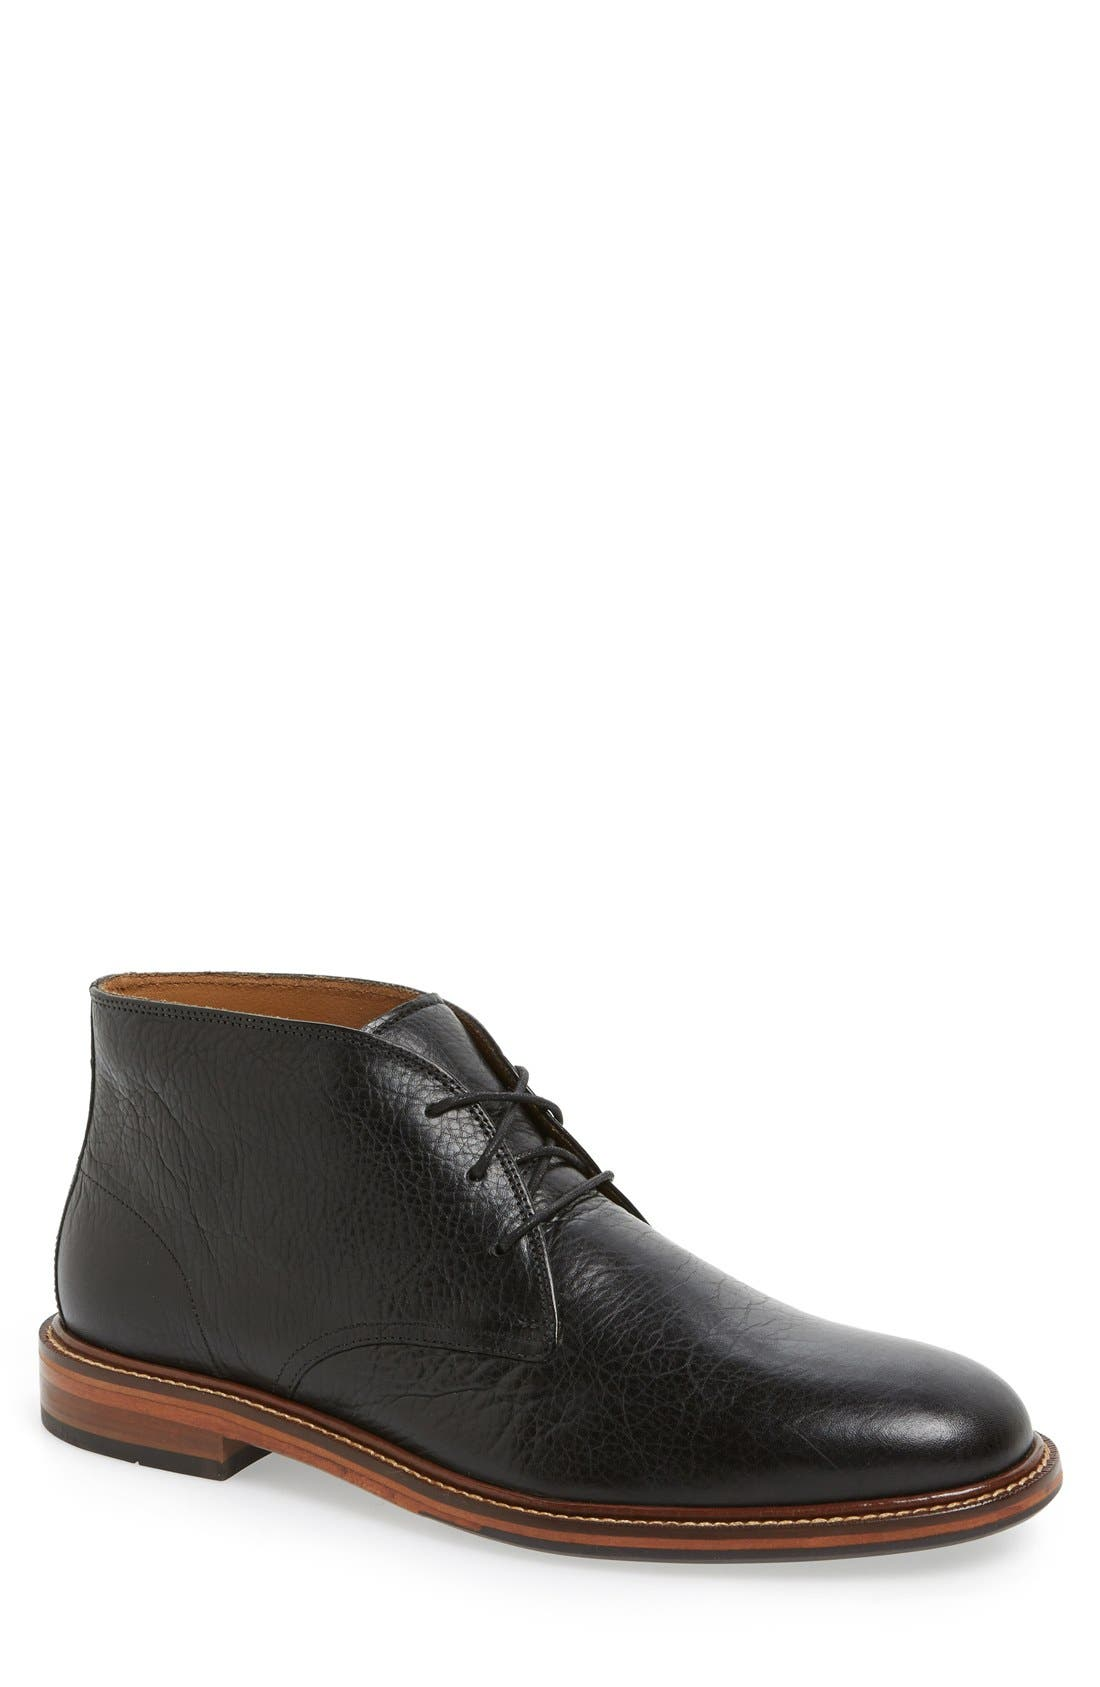 'Barron' Chukka Boot,                         Main,                         color, 001